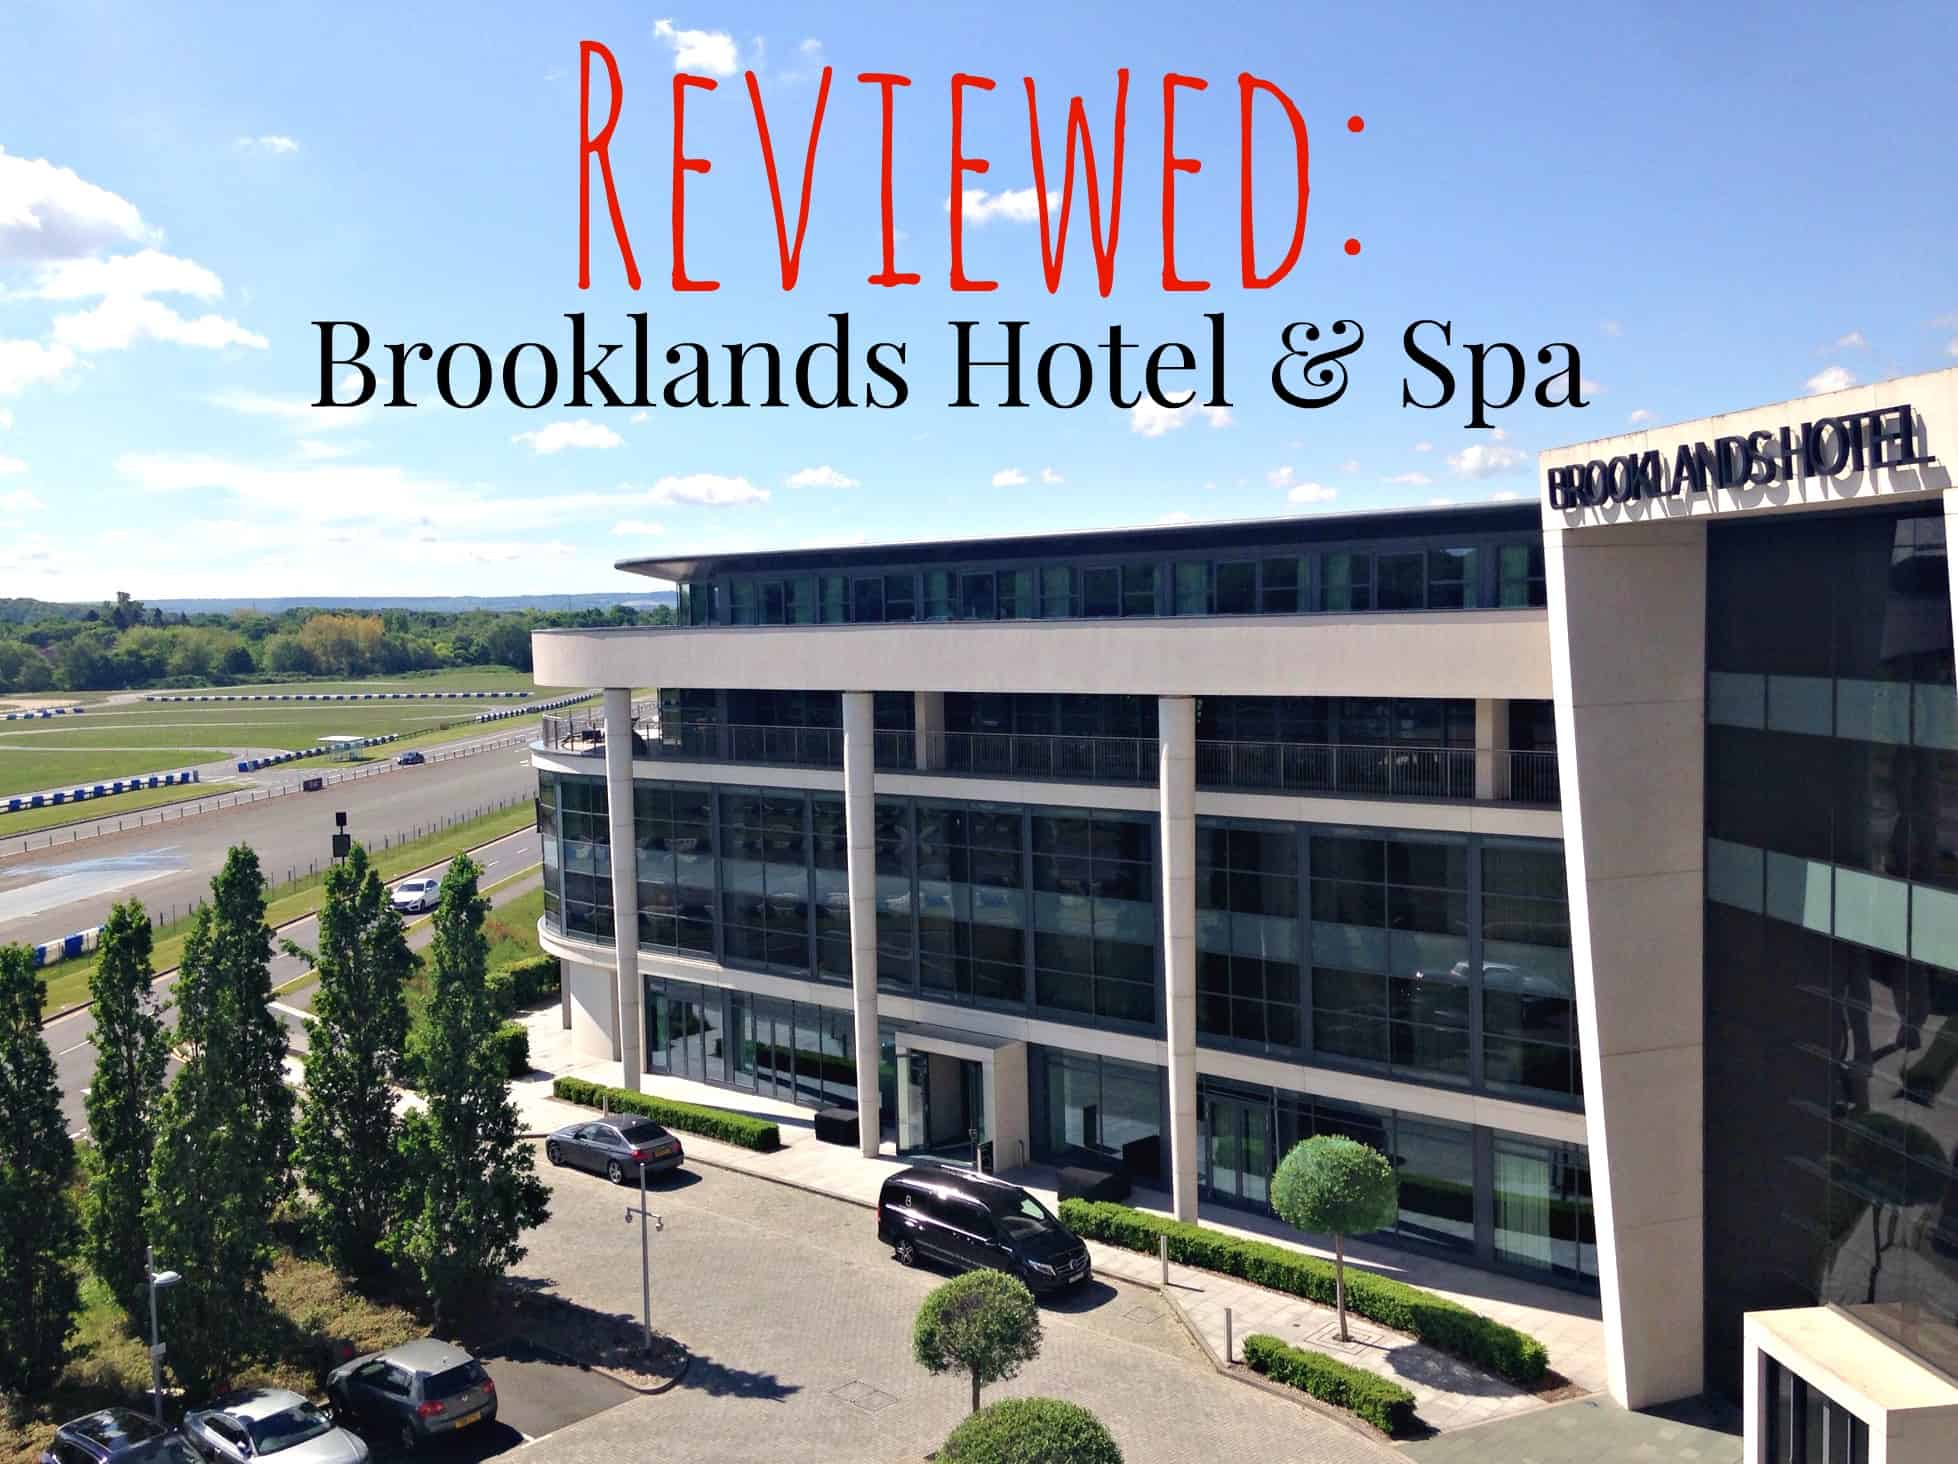 Reviewed: A Pampering Stay at Brooklands Hotel & Spa, Surrey